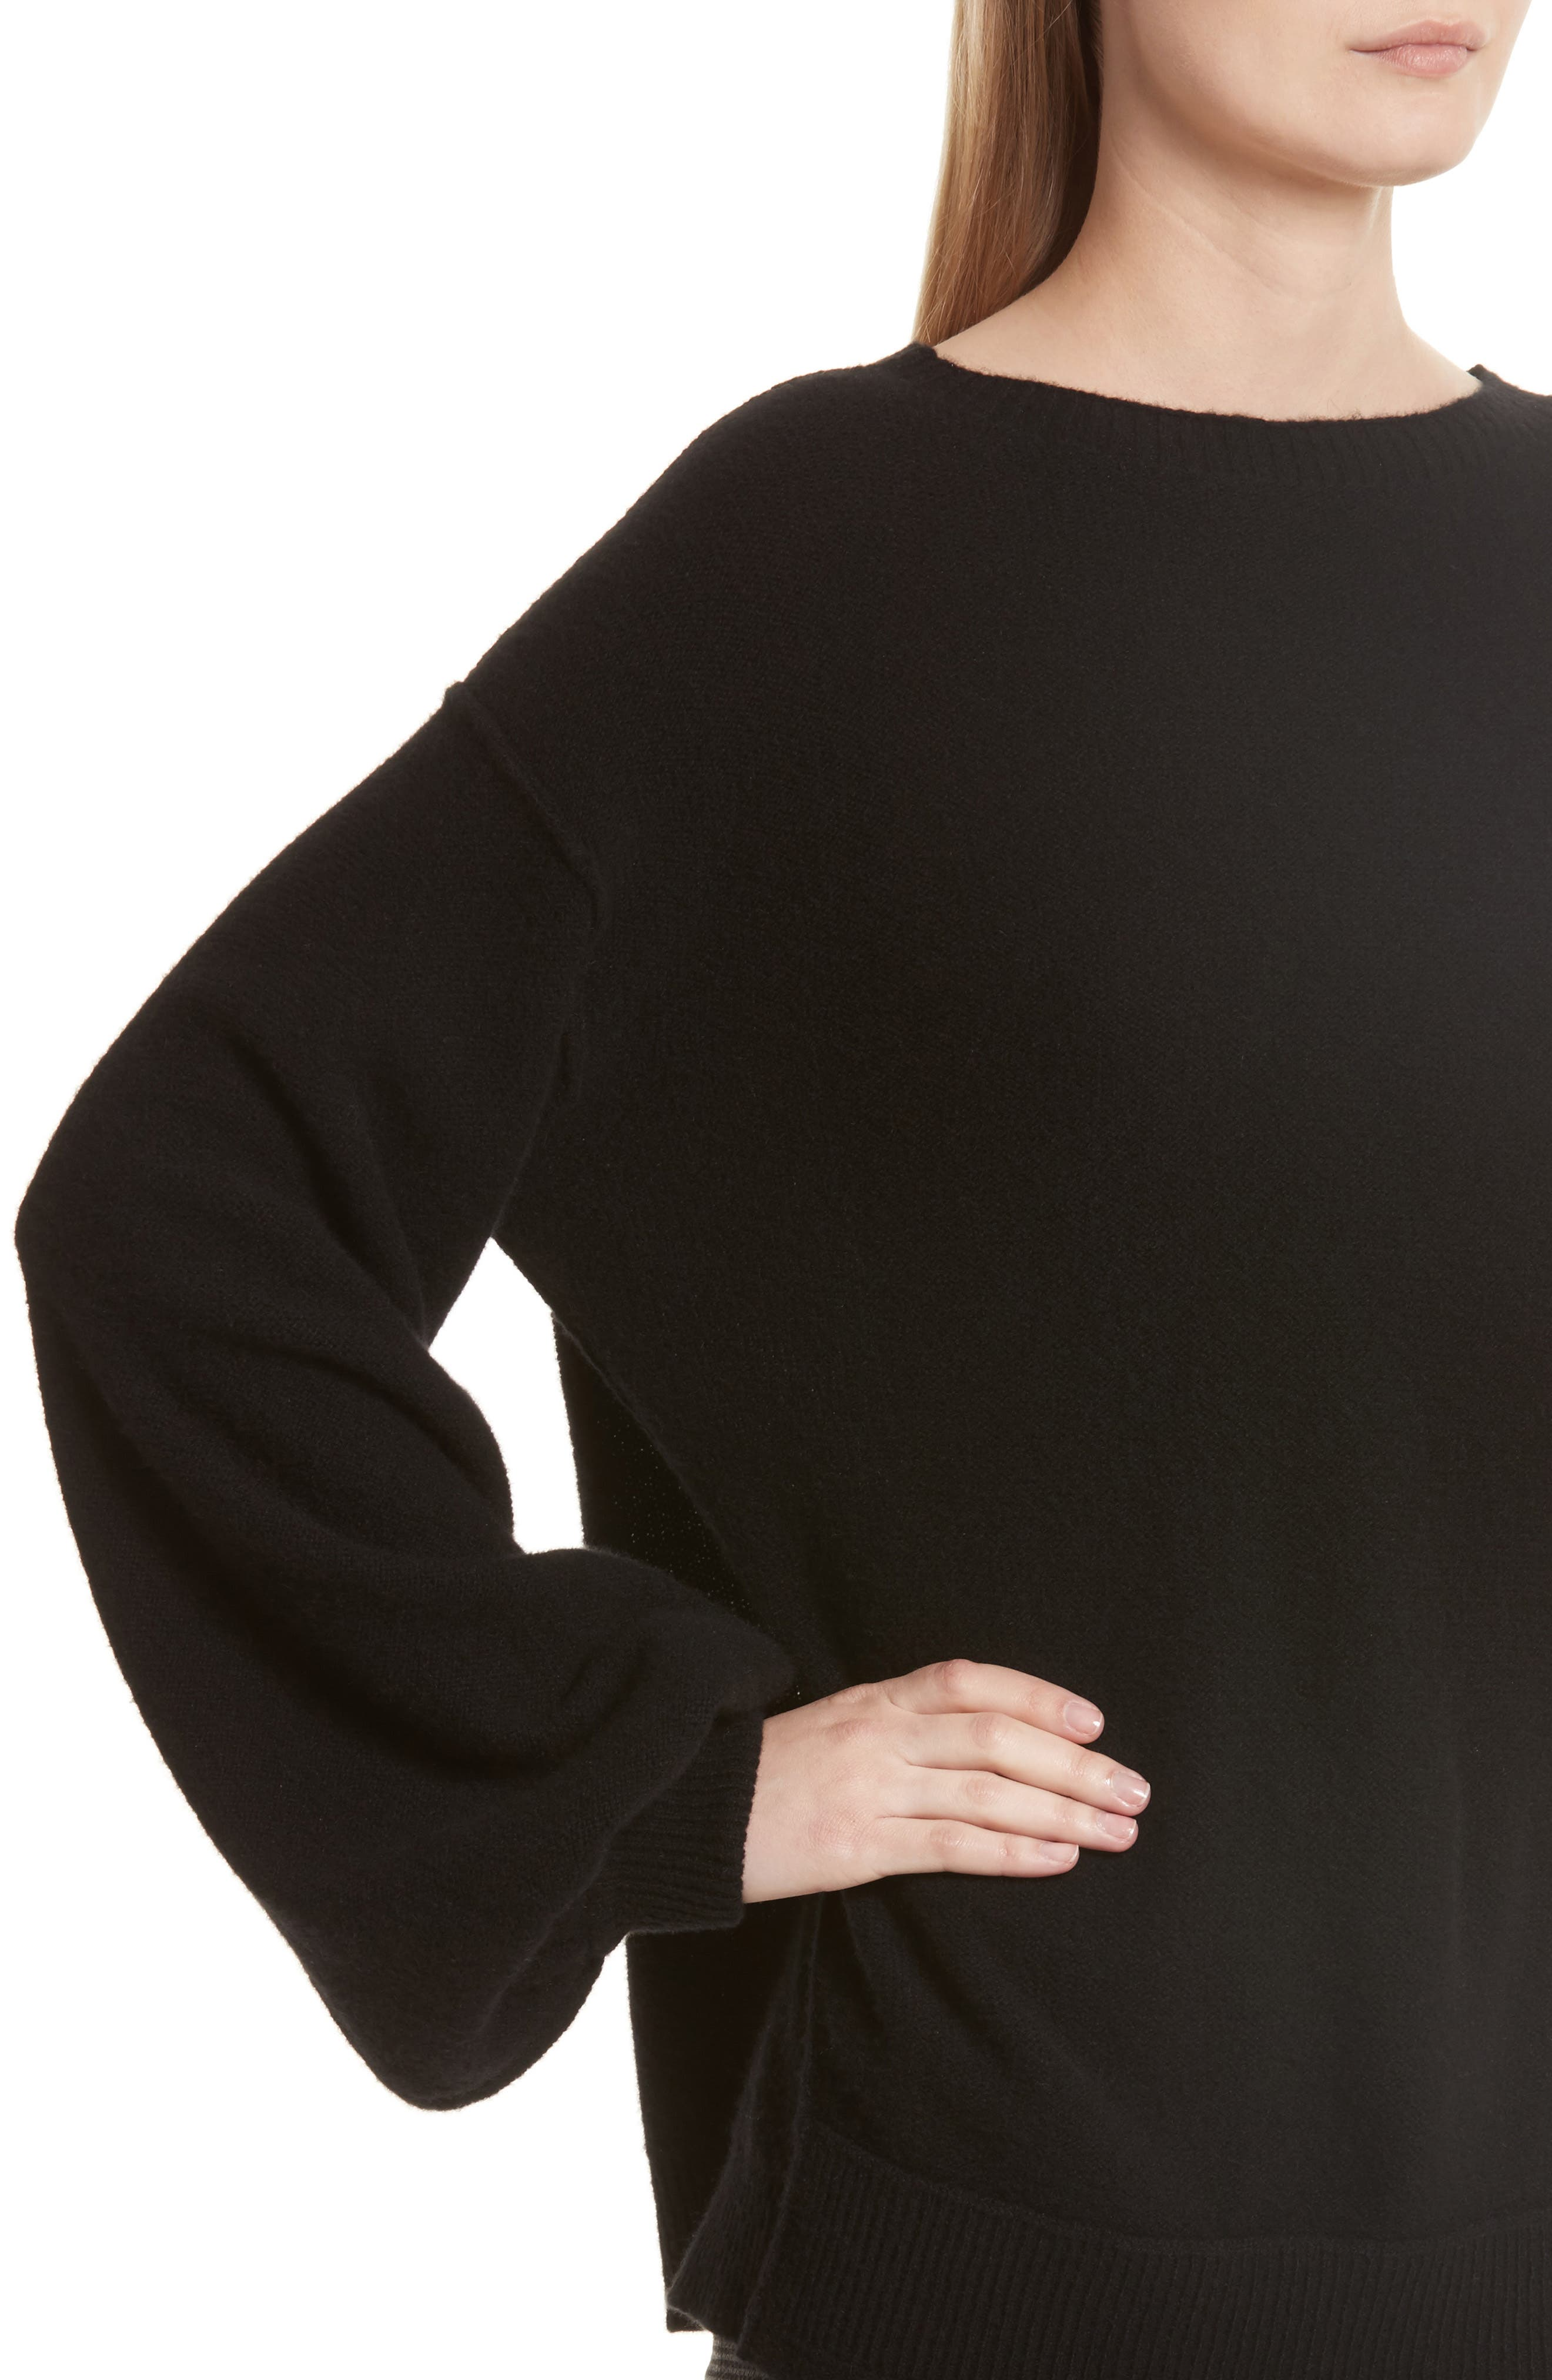 Balloon Sleeve Wool & Cashmere Sweater,                             Alternate thumbnail 5, color,                             Black